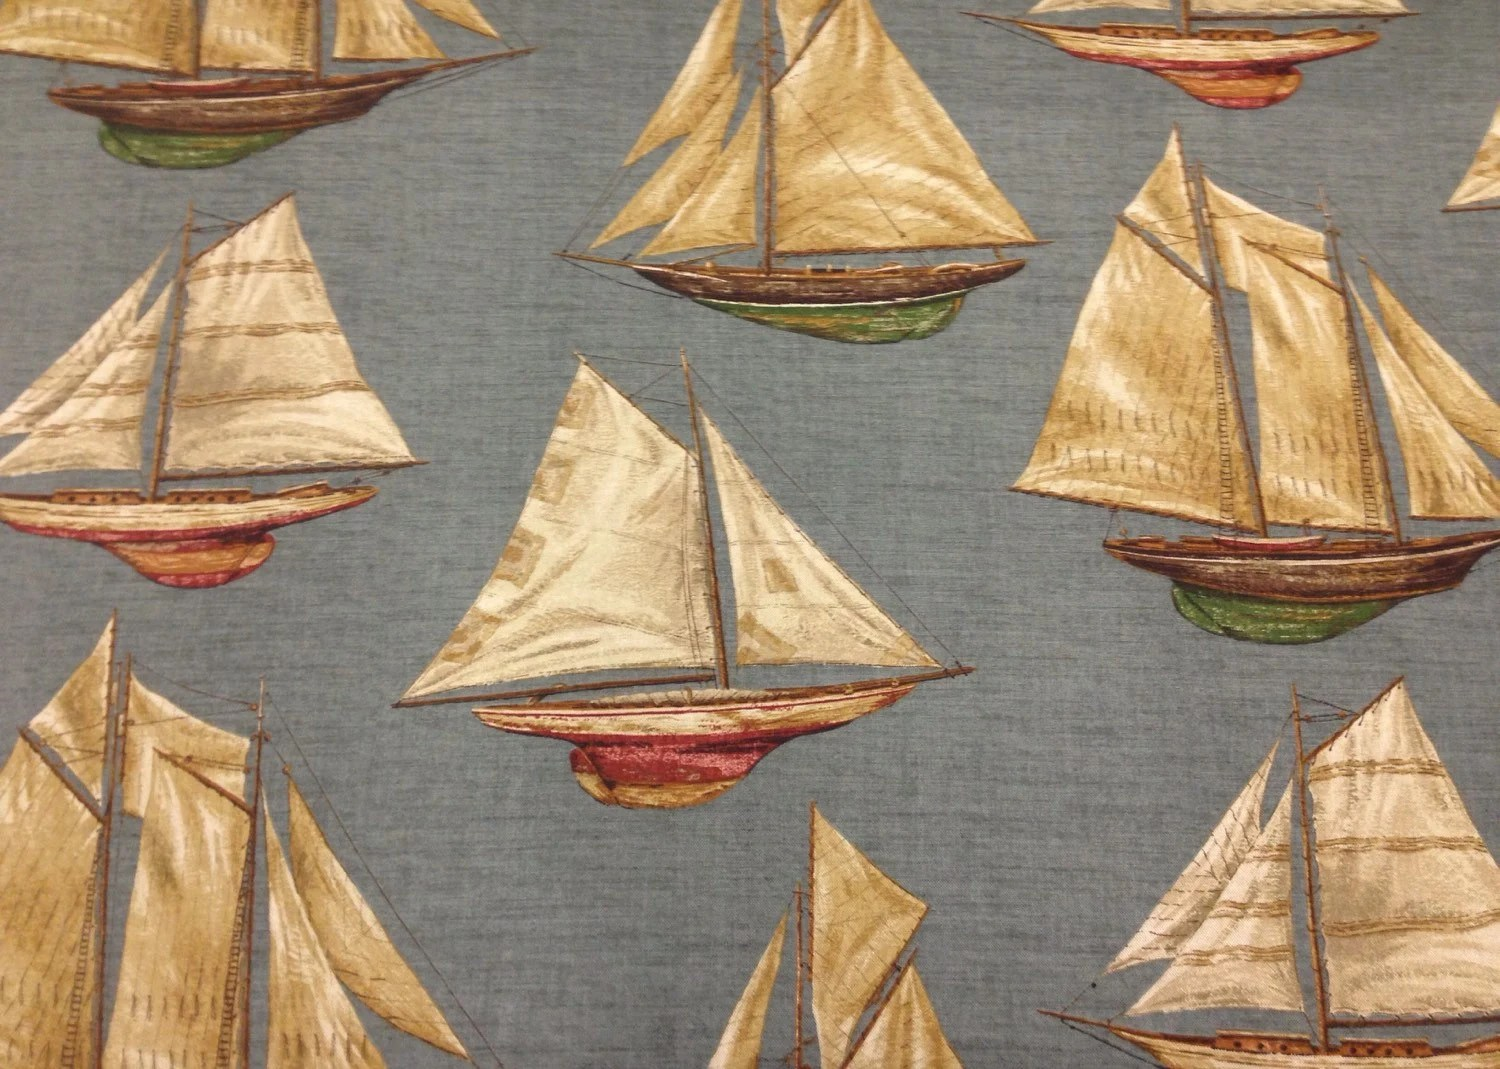 sail cloth beach chairs leather sitting chair boats upholstery fabric nautical decor sailboat